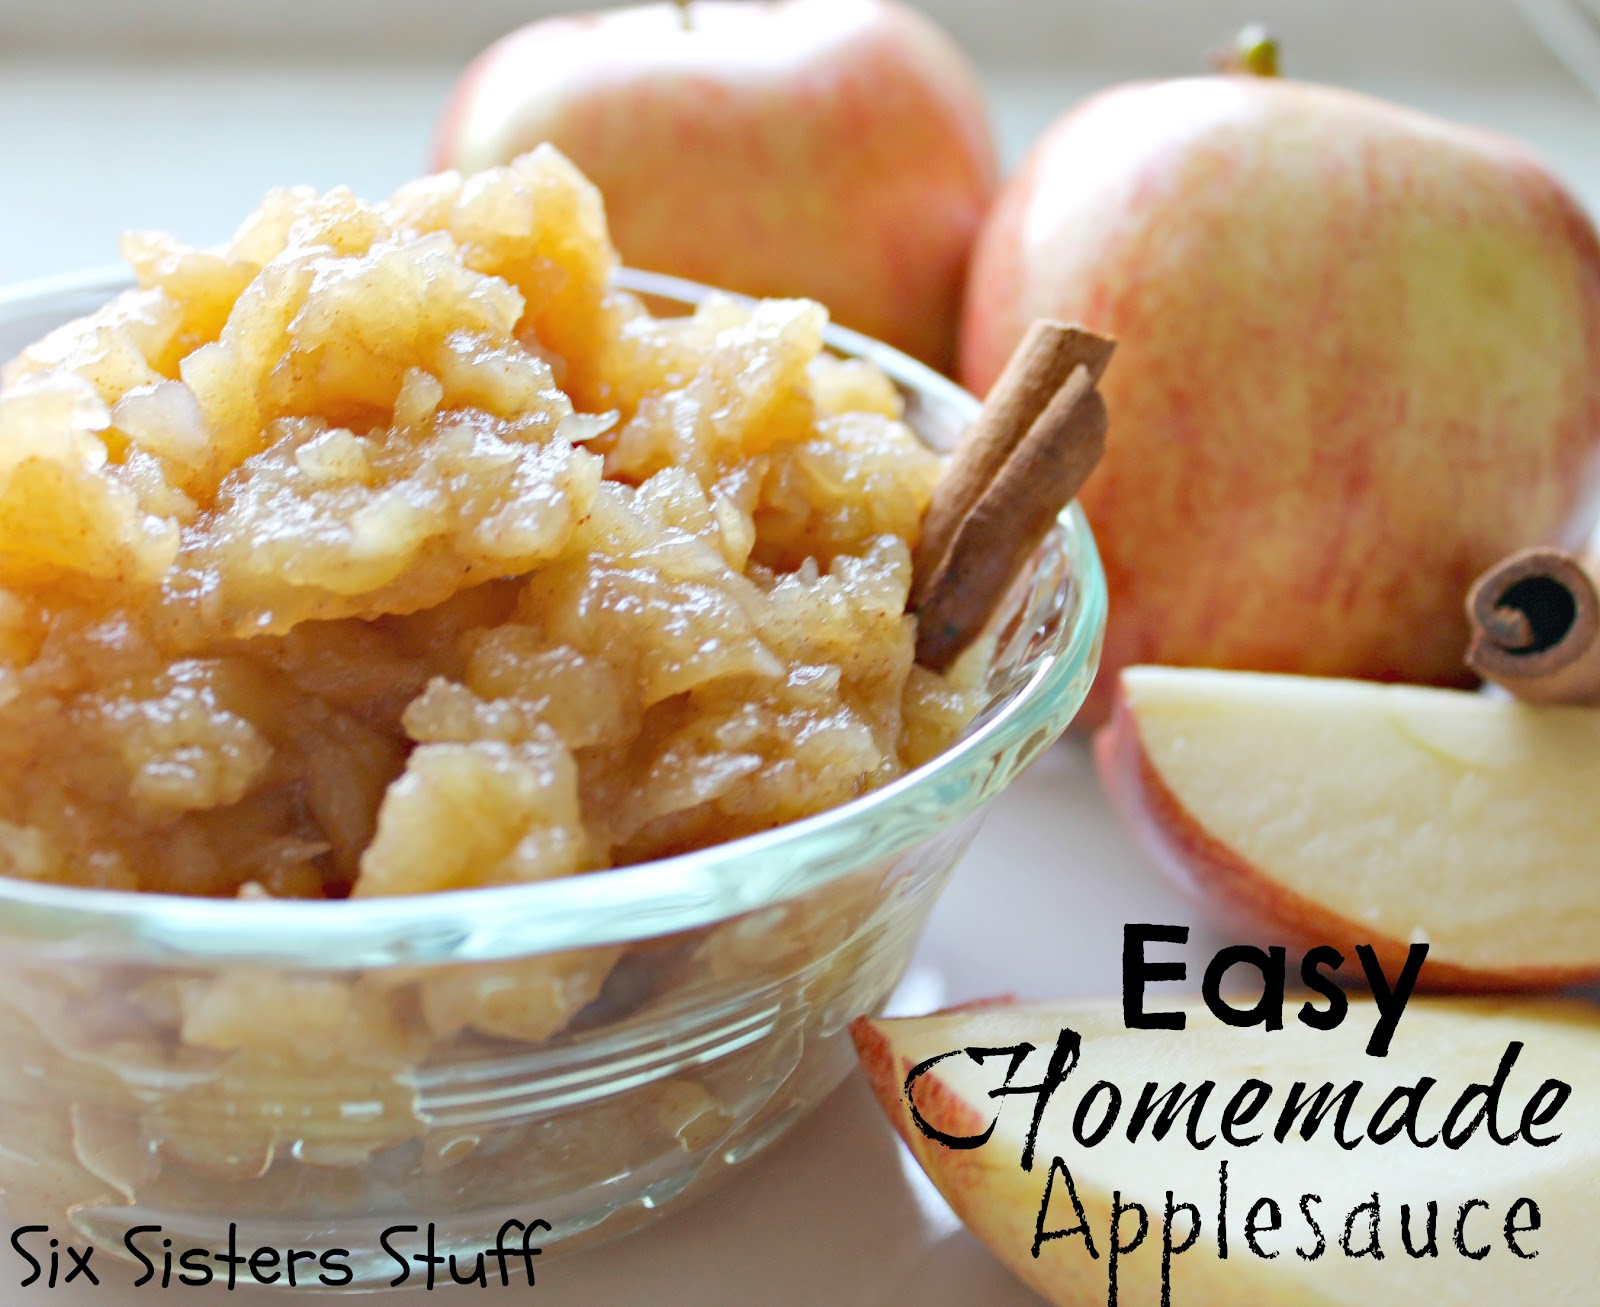 Healthy Meals Monday: Easy Homemade Applesauce | Six Sisters' Stuff